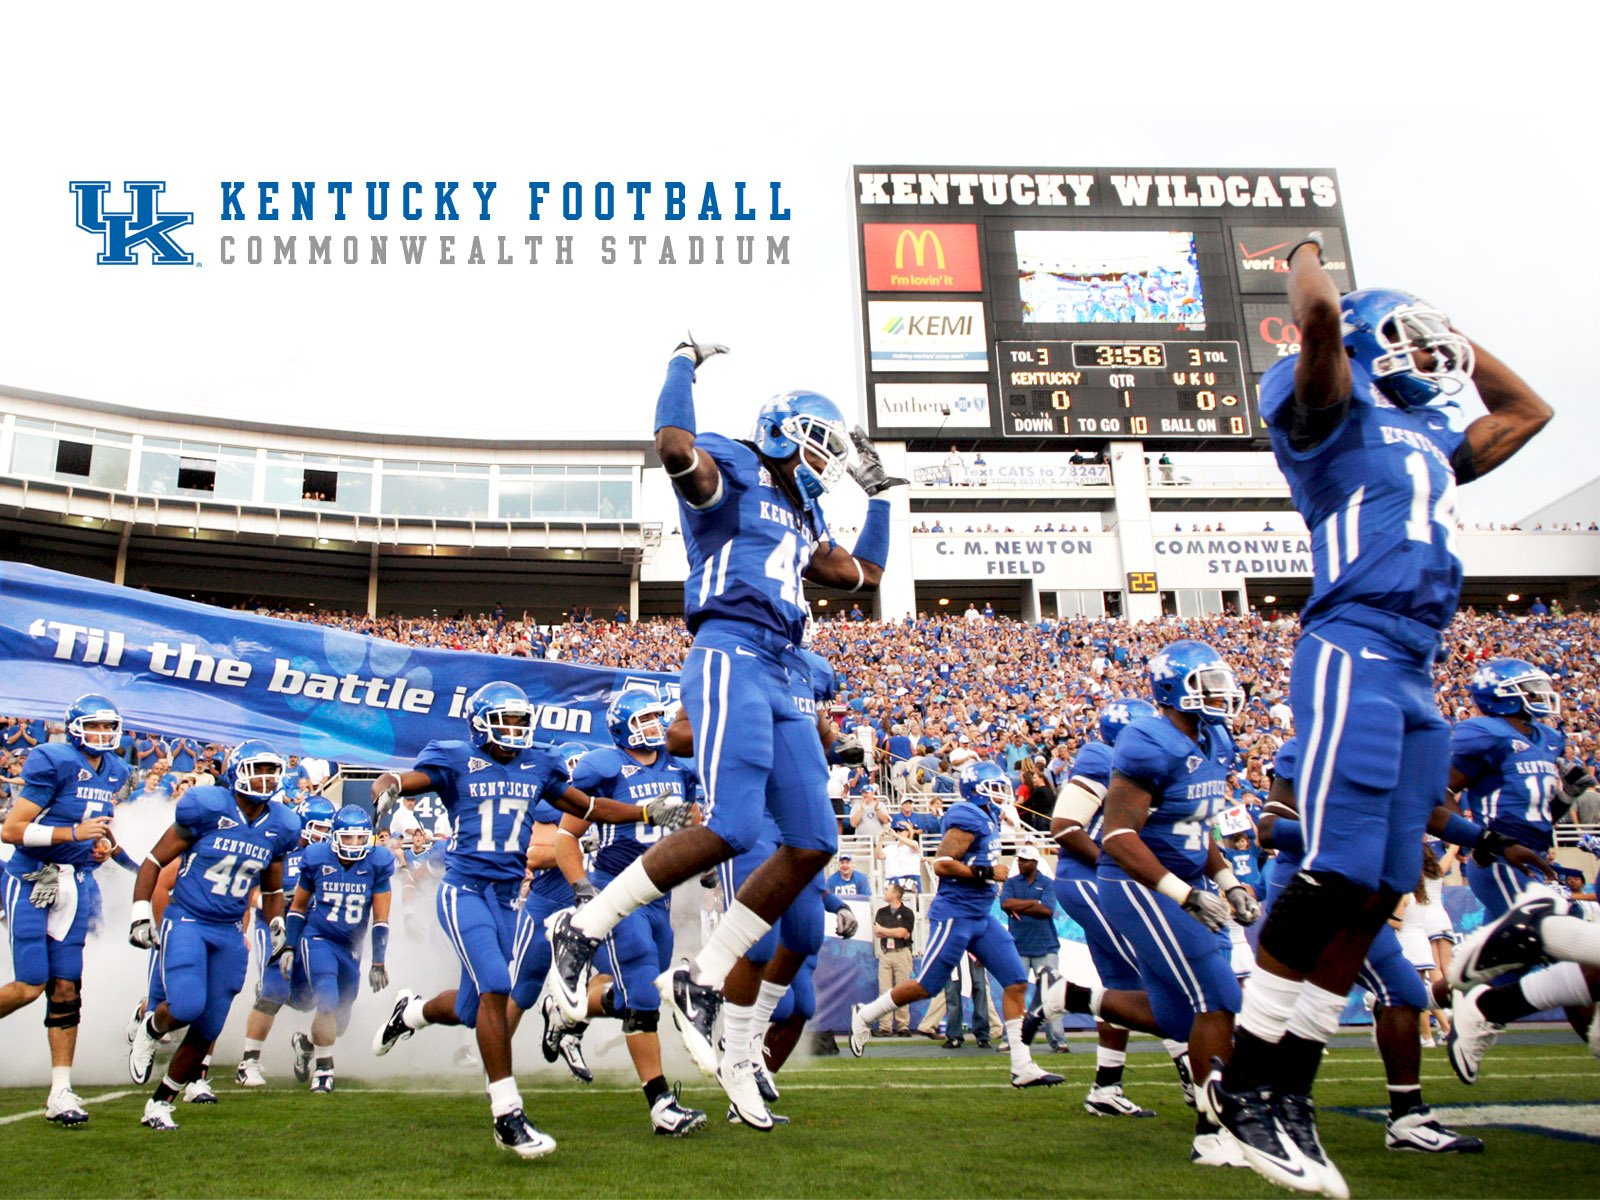 Kentucky Wildcats Official Athletic Site Football 2016 Car Release 1600x1200